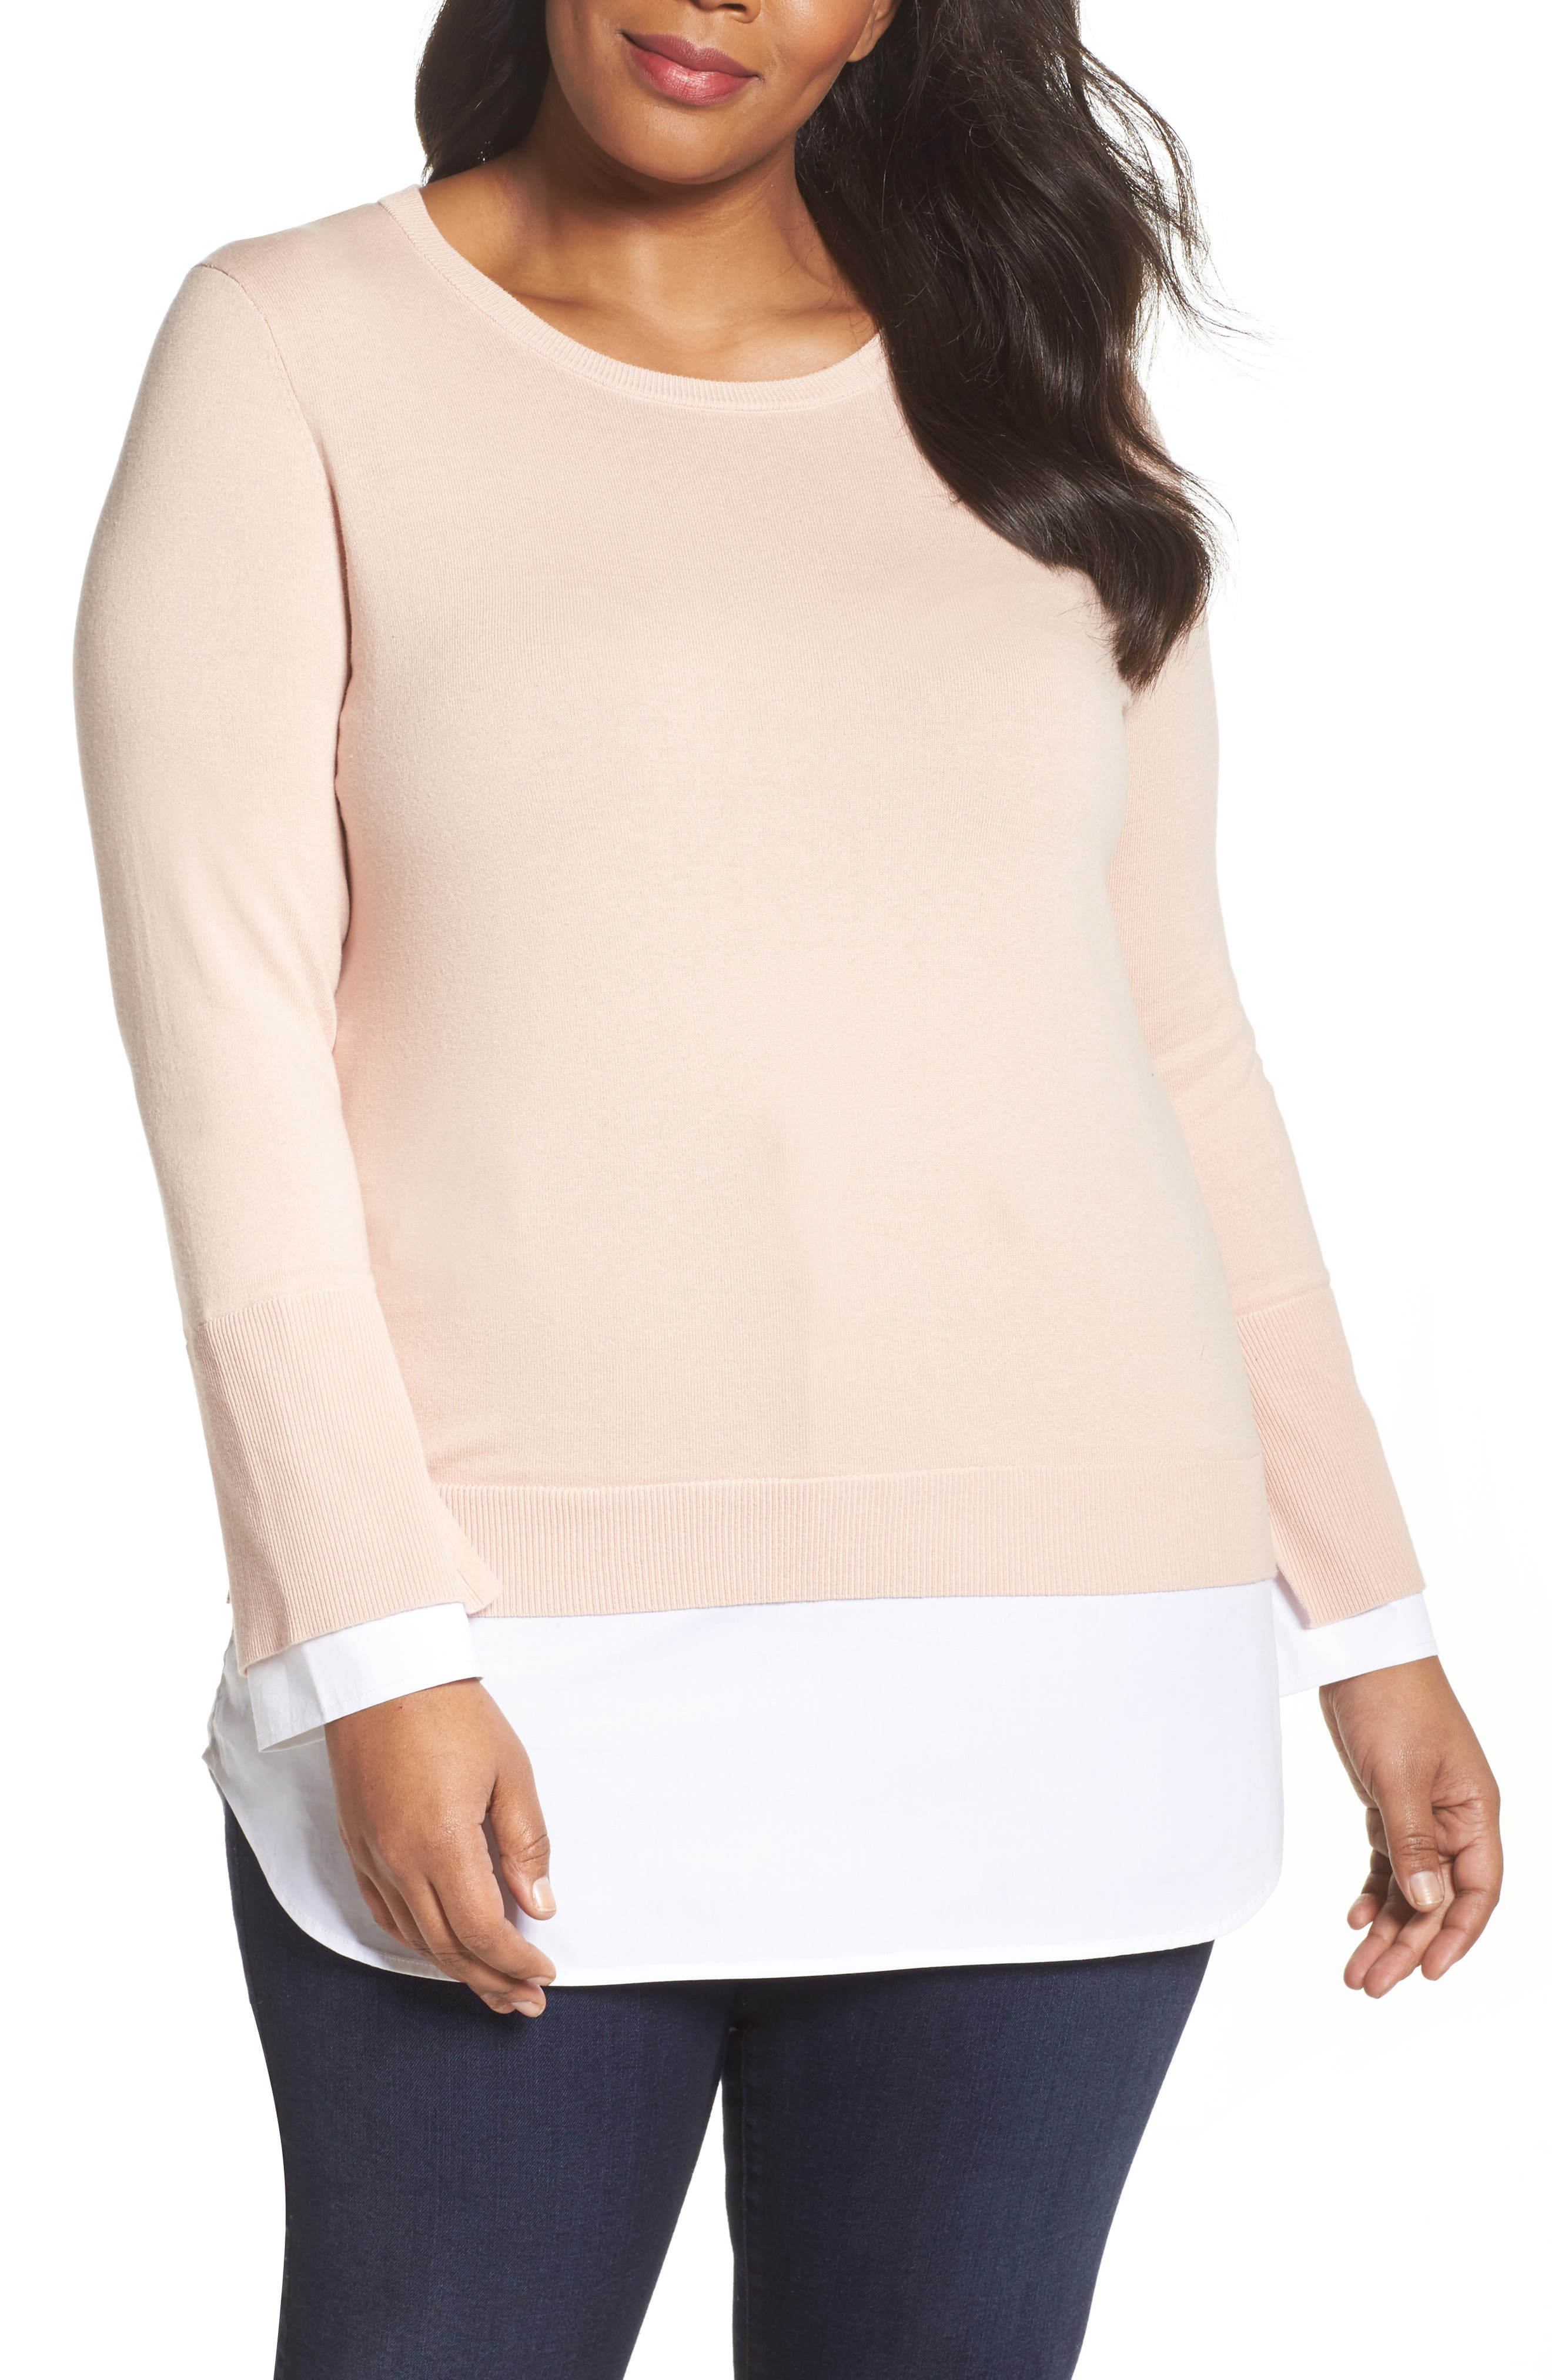 Main Image - Vince Camuto Layered Look Sweater (Plus Size)